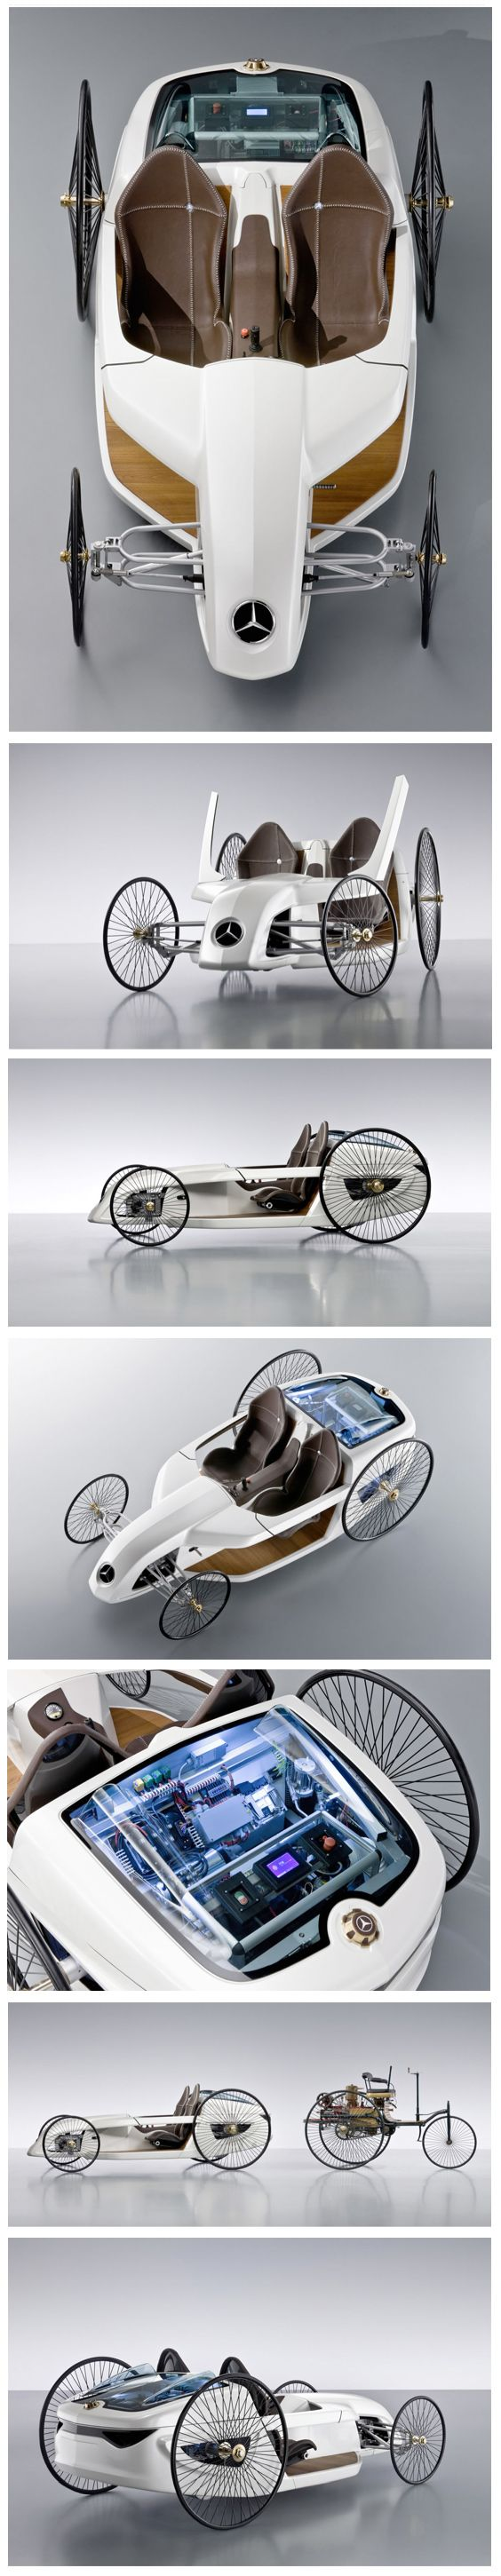 Mercedes-Benz F-CELL Roadster with Hybrid Drive